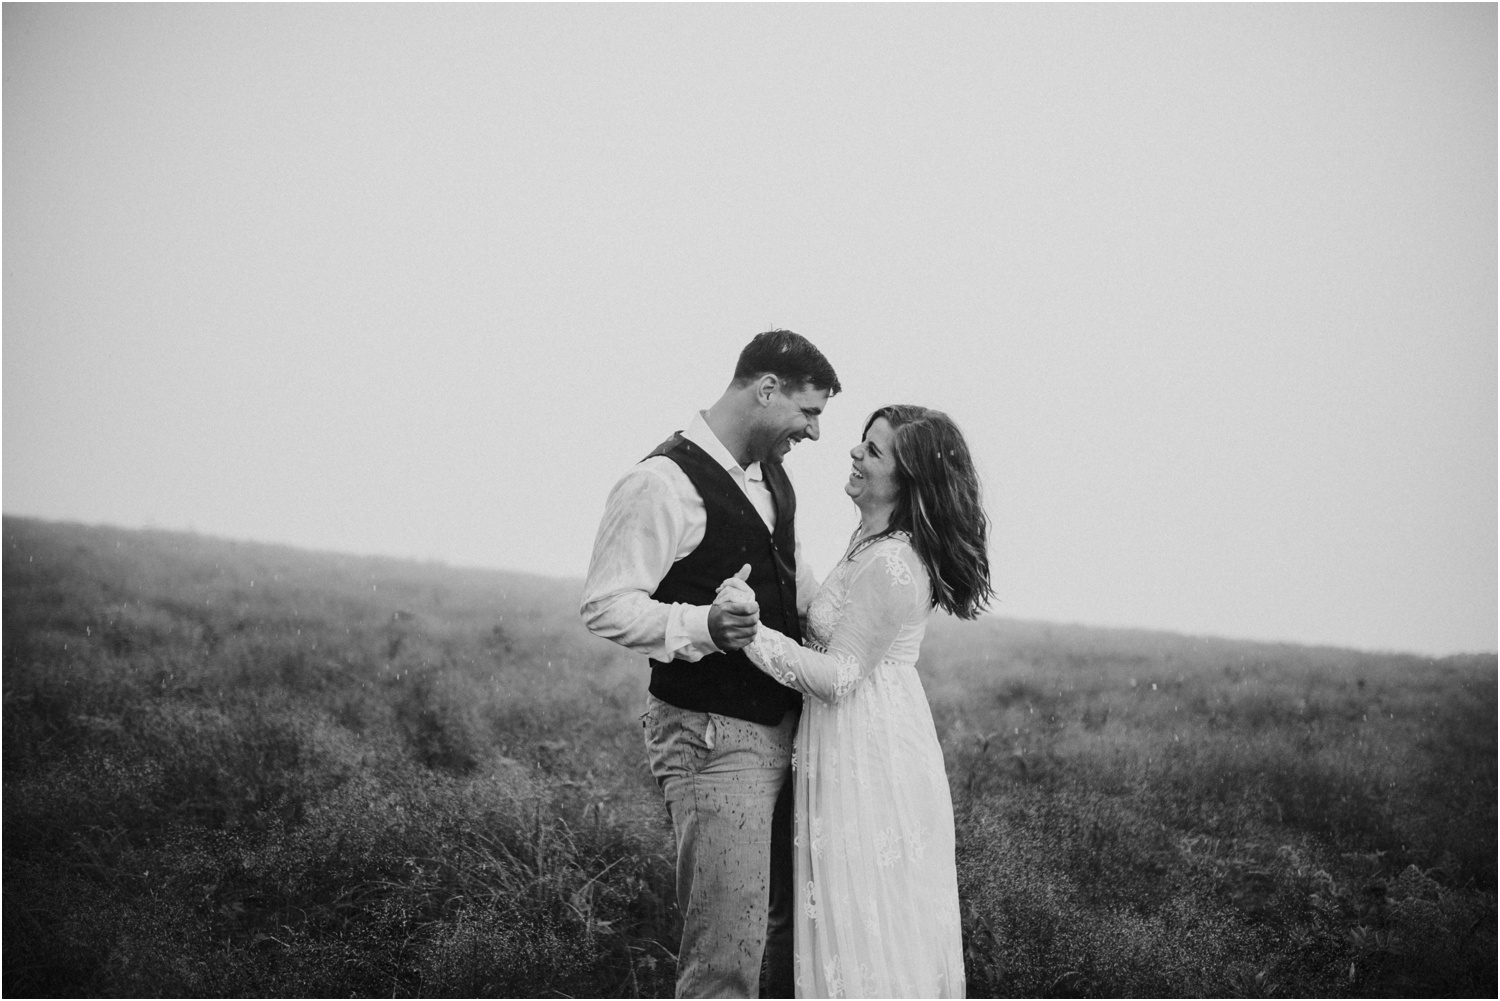 lovestoriesco-asheville-north-carolina-elopement-wedding-31.jpg